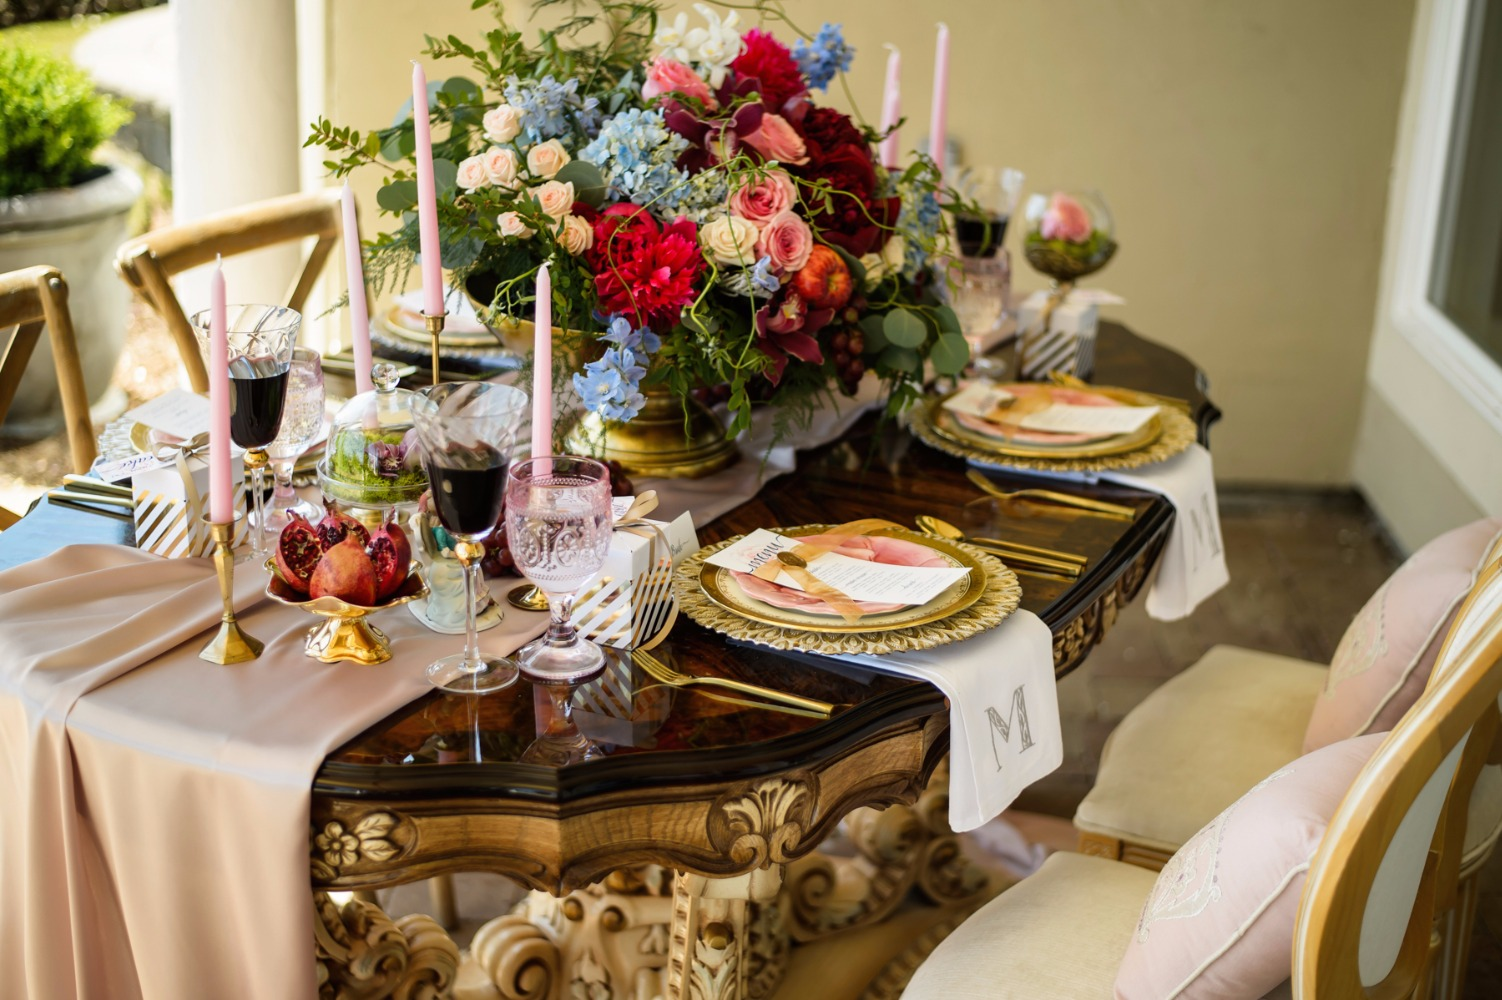 4_a-colorful-over-the-top-wedding-inspired-by-marie-antoinette.jpg